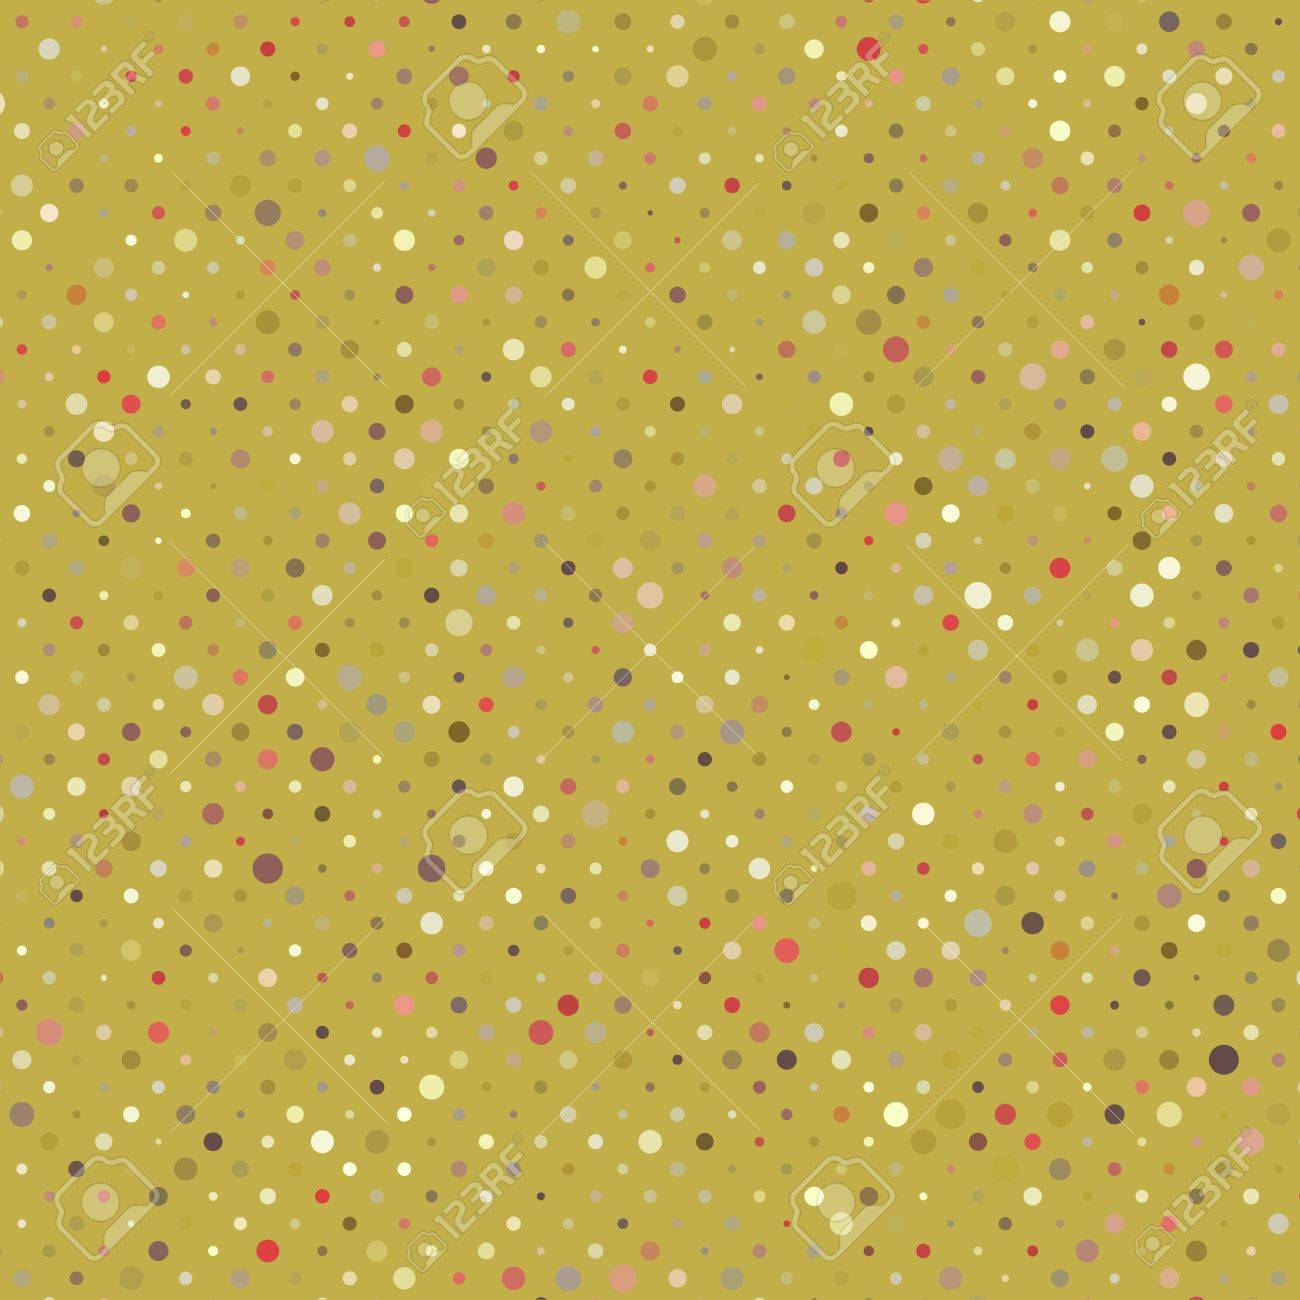 Polka Dot Old Green Paper Template Royalty Free Cliparts Vectors – Dot Paper Template